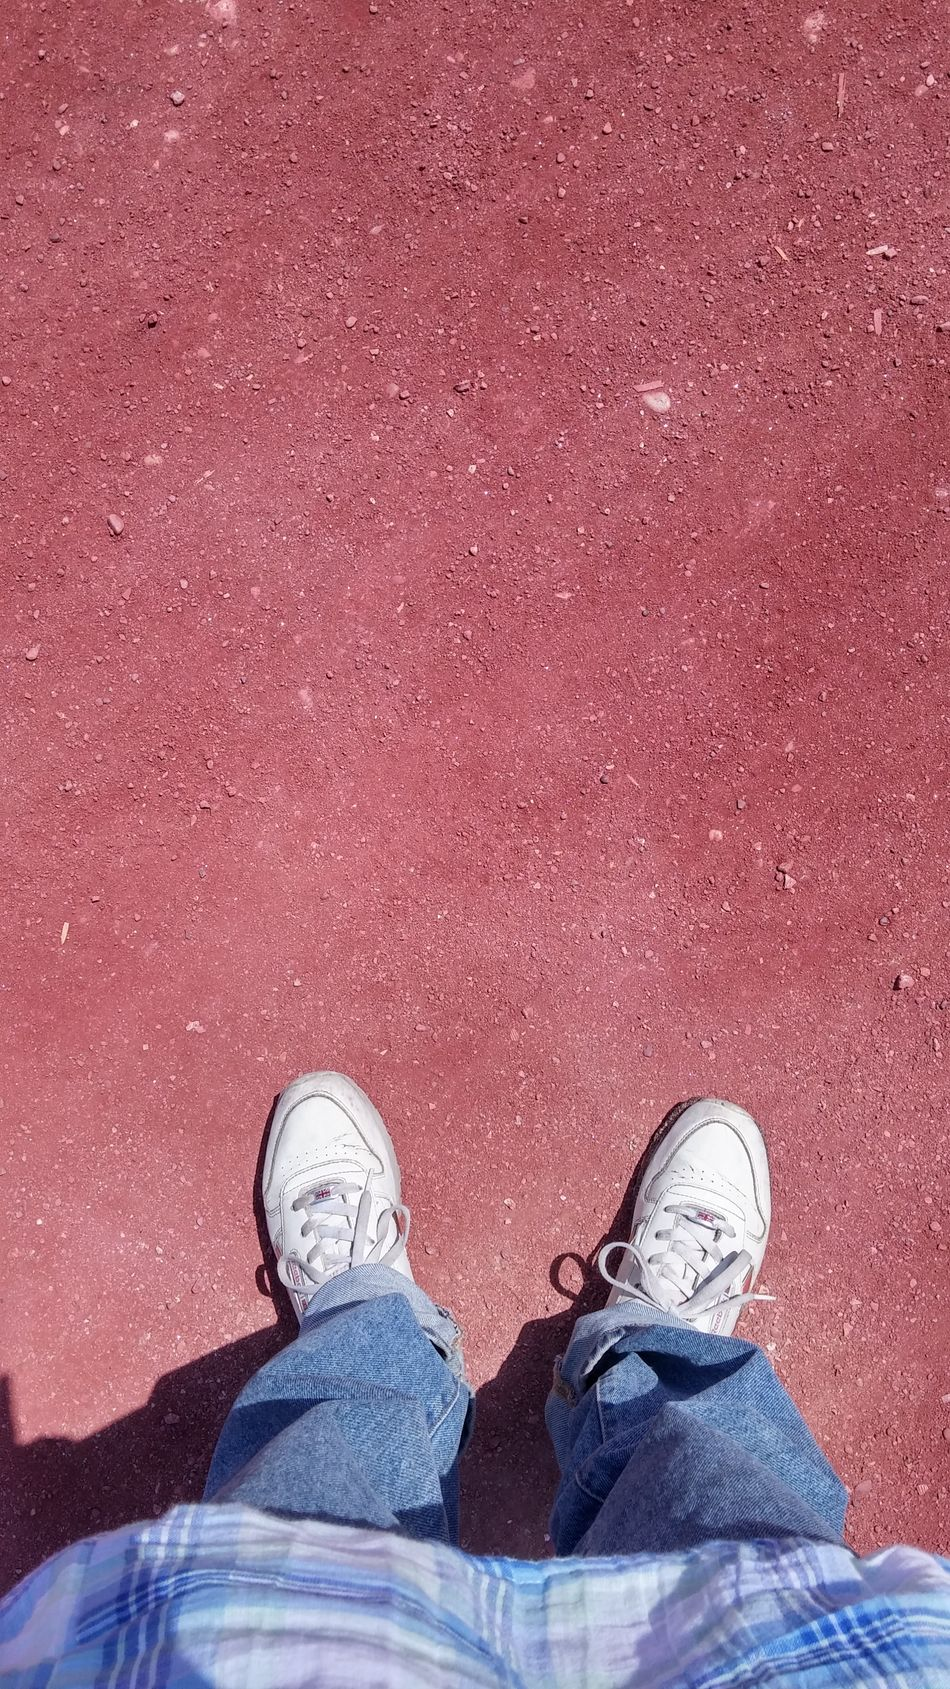 Red dust... Beautiful Taking Photos Getting Inspired From Where I Stand Enjoying Life